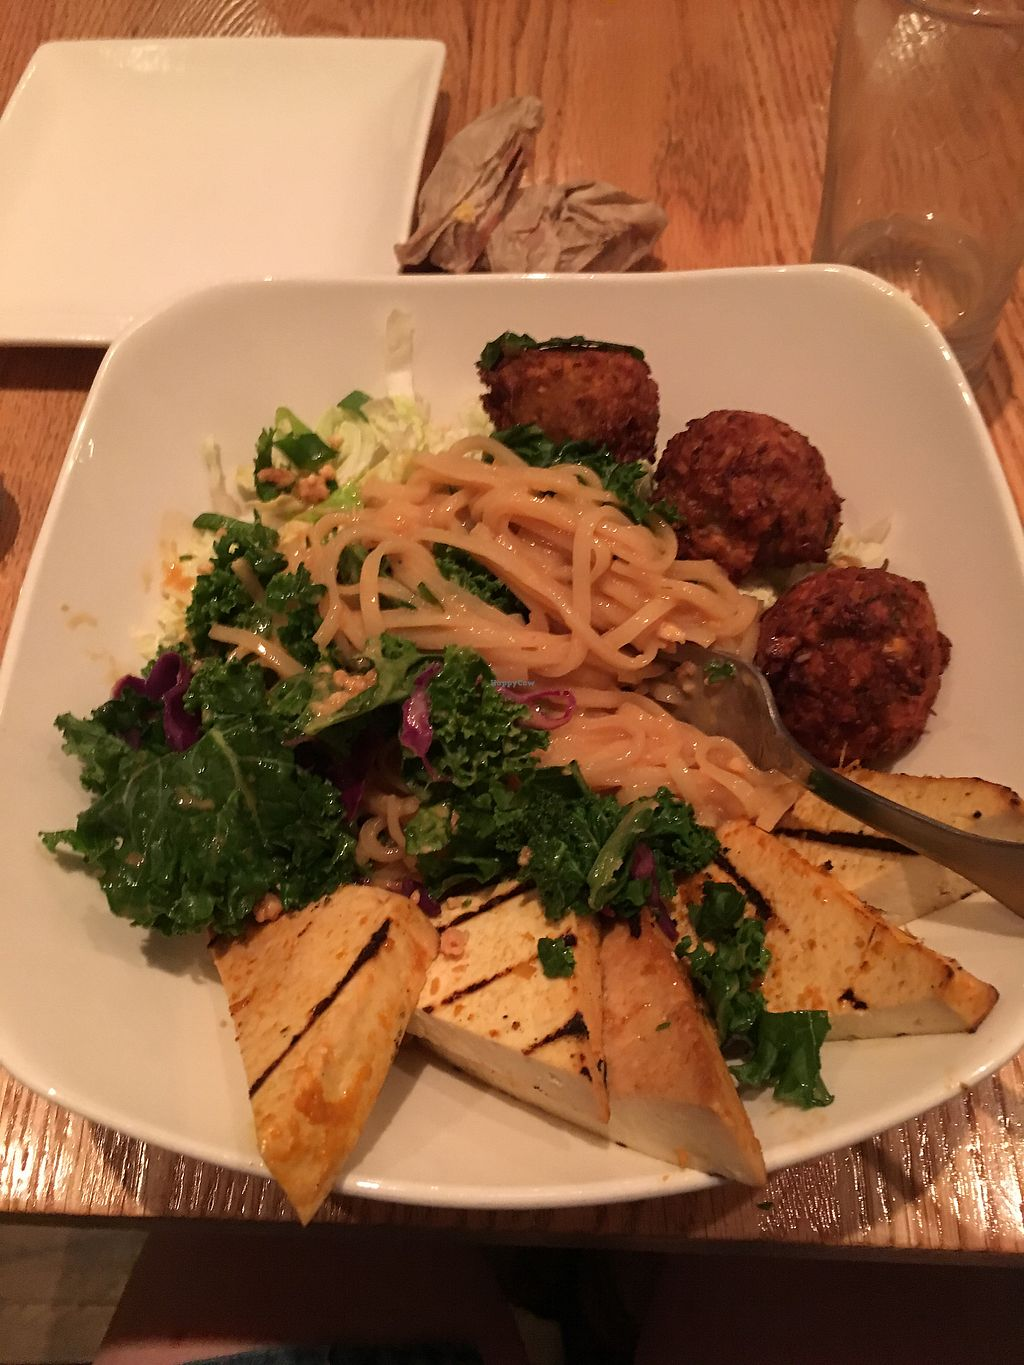 """Photo of Pure Kitchen - Elgin St  by <a href=""""/members/profile/annieflannery"""">annieflannery</a> <br/>""""Fantastic"""" bowl with an order of falafels!  <br/> August 17, 2017  - <a href='/contact/abuse/image/75281/293674'>Report</a>"""